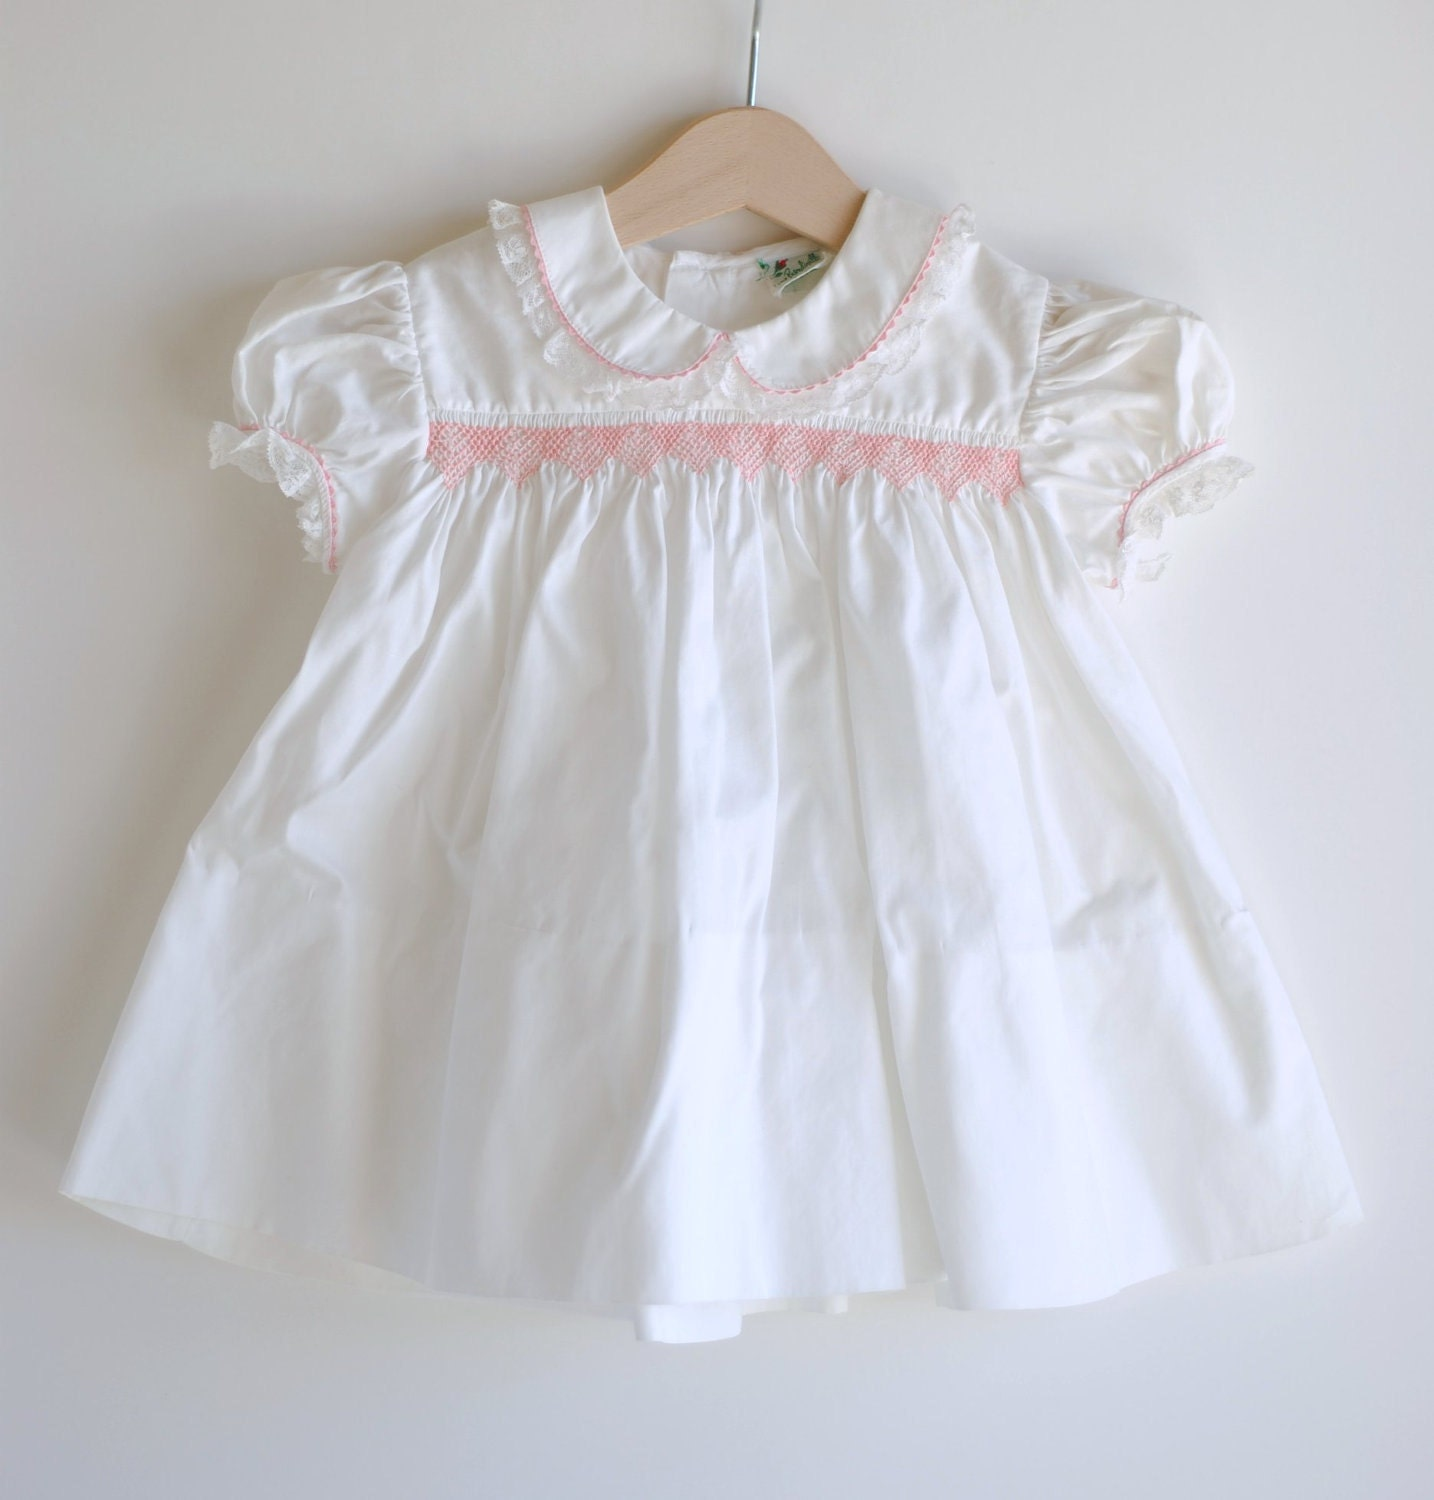 vintage 1950 s baby dress white with pink smocking